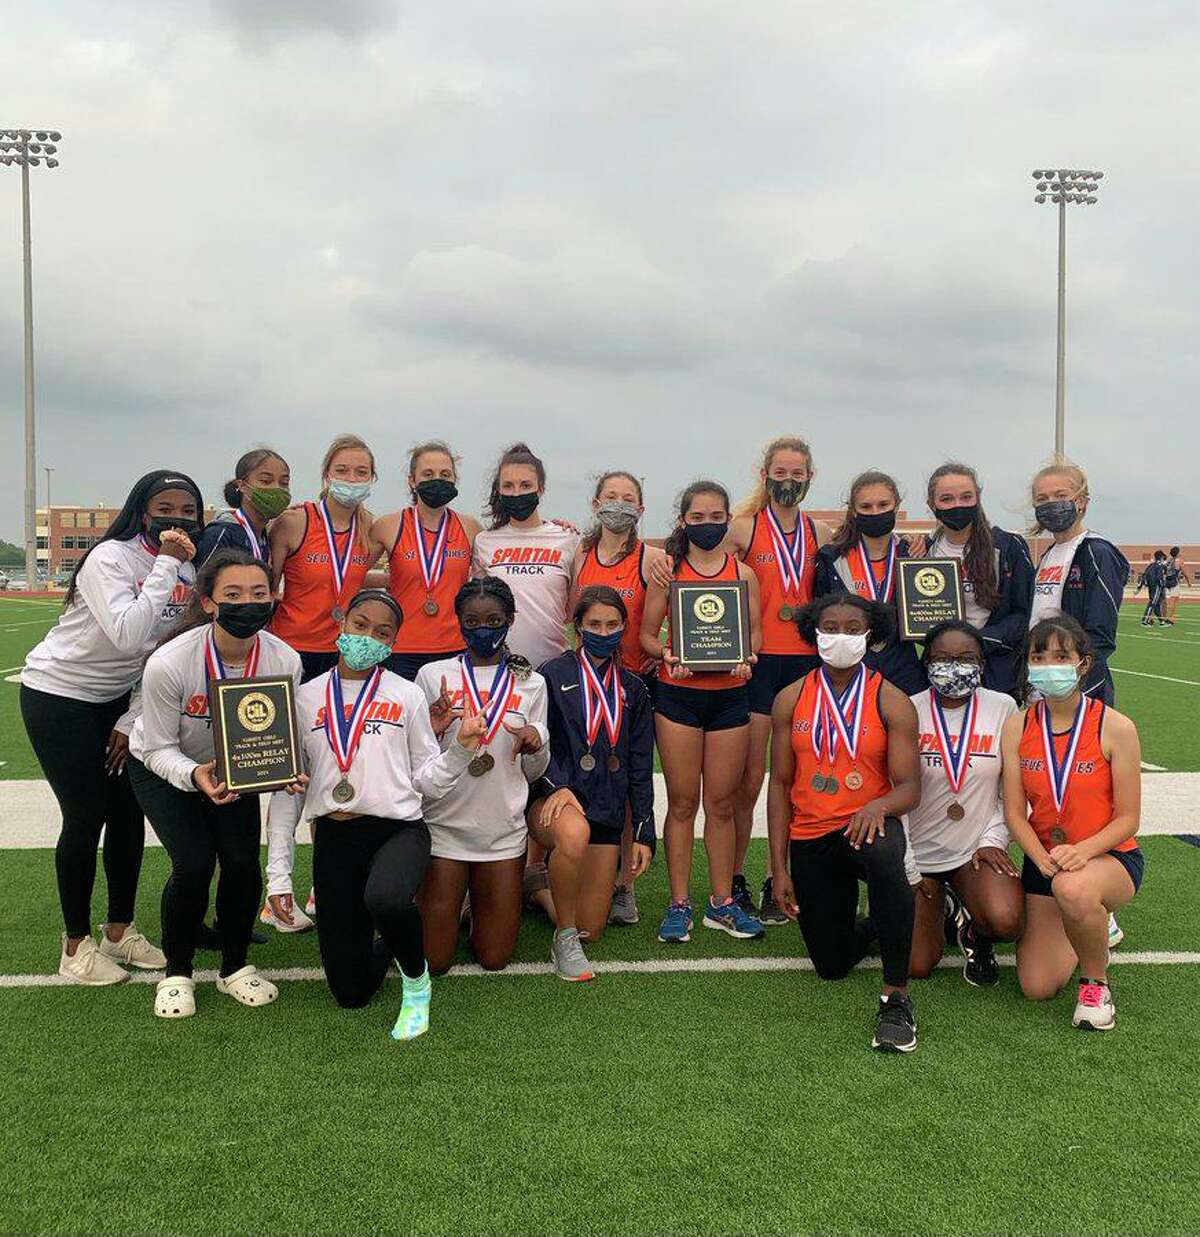 The Seven Lakes girls track and field team won the District 19-6A championship with 198 points. The Spartans won six events and qualified 12 athletes for the regional meet.